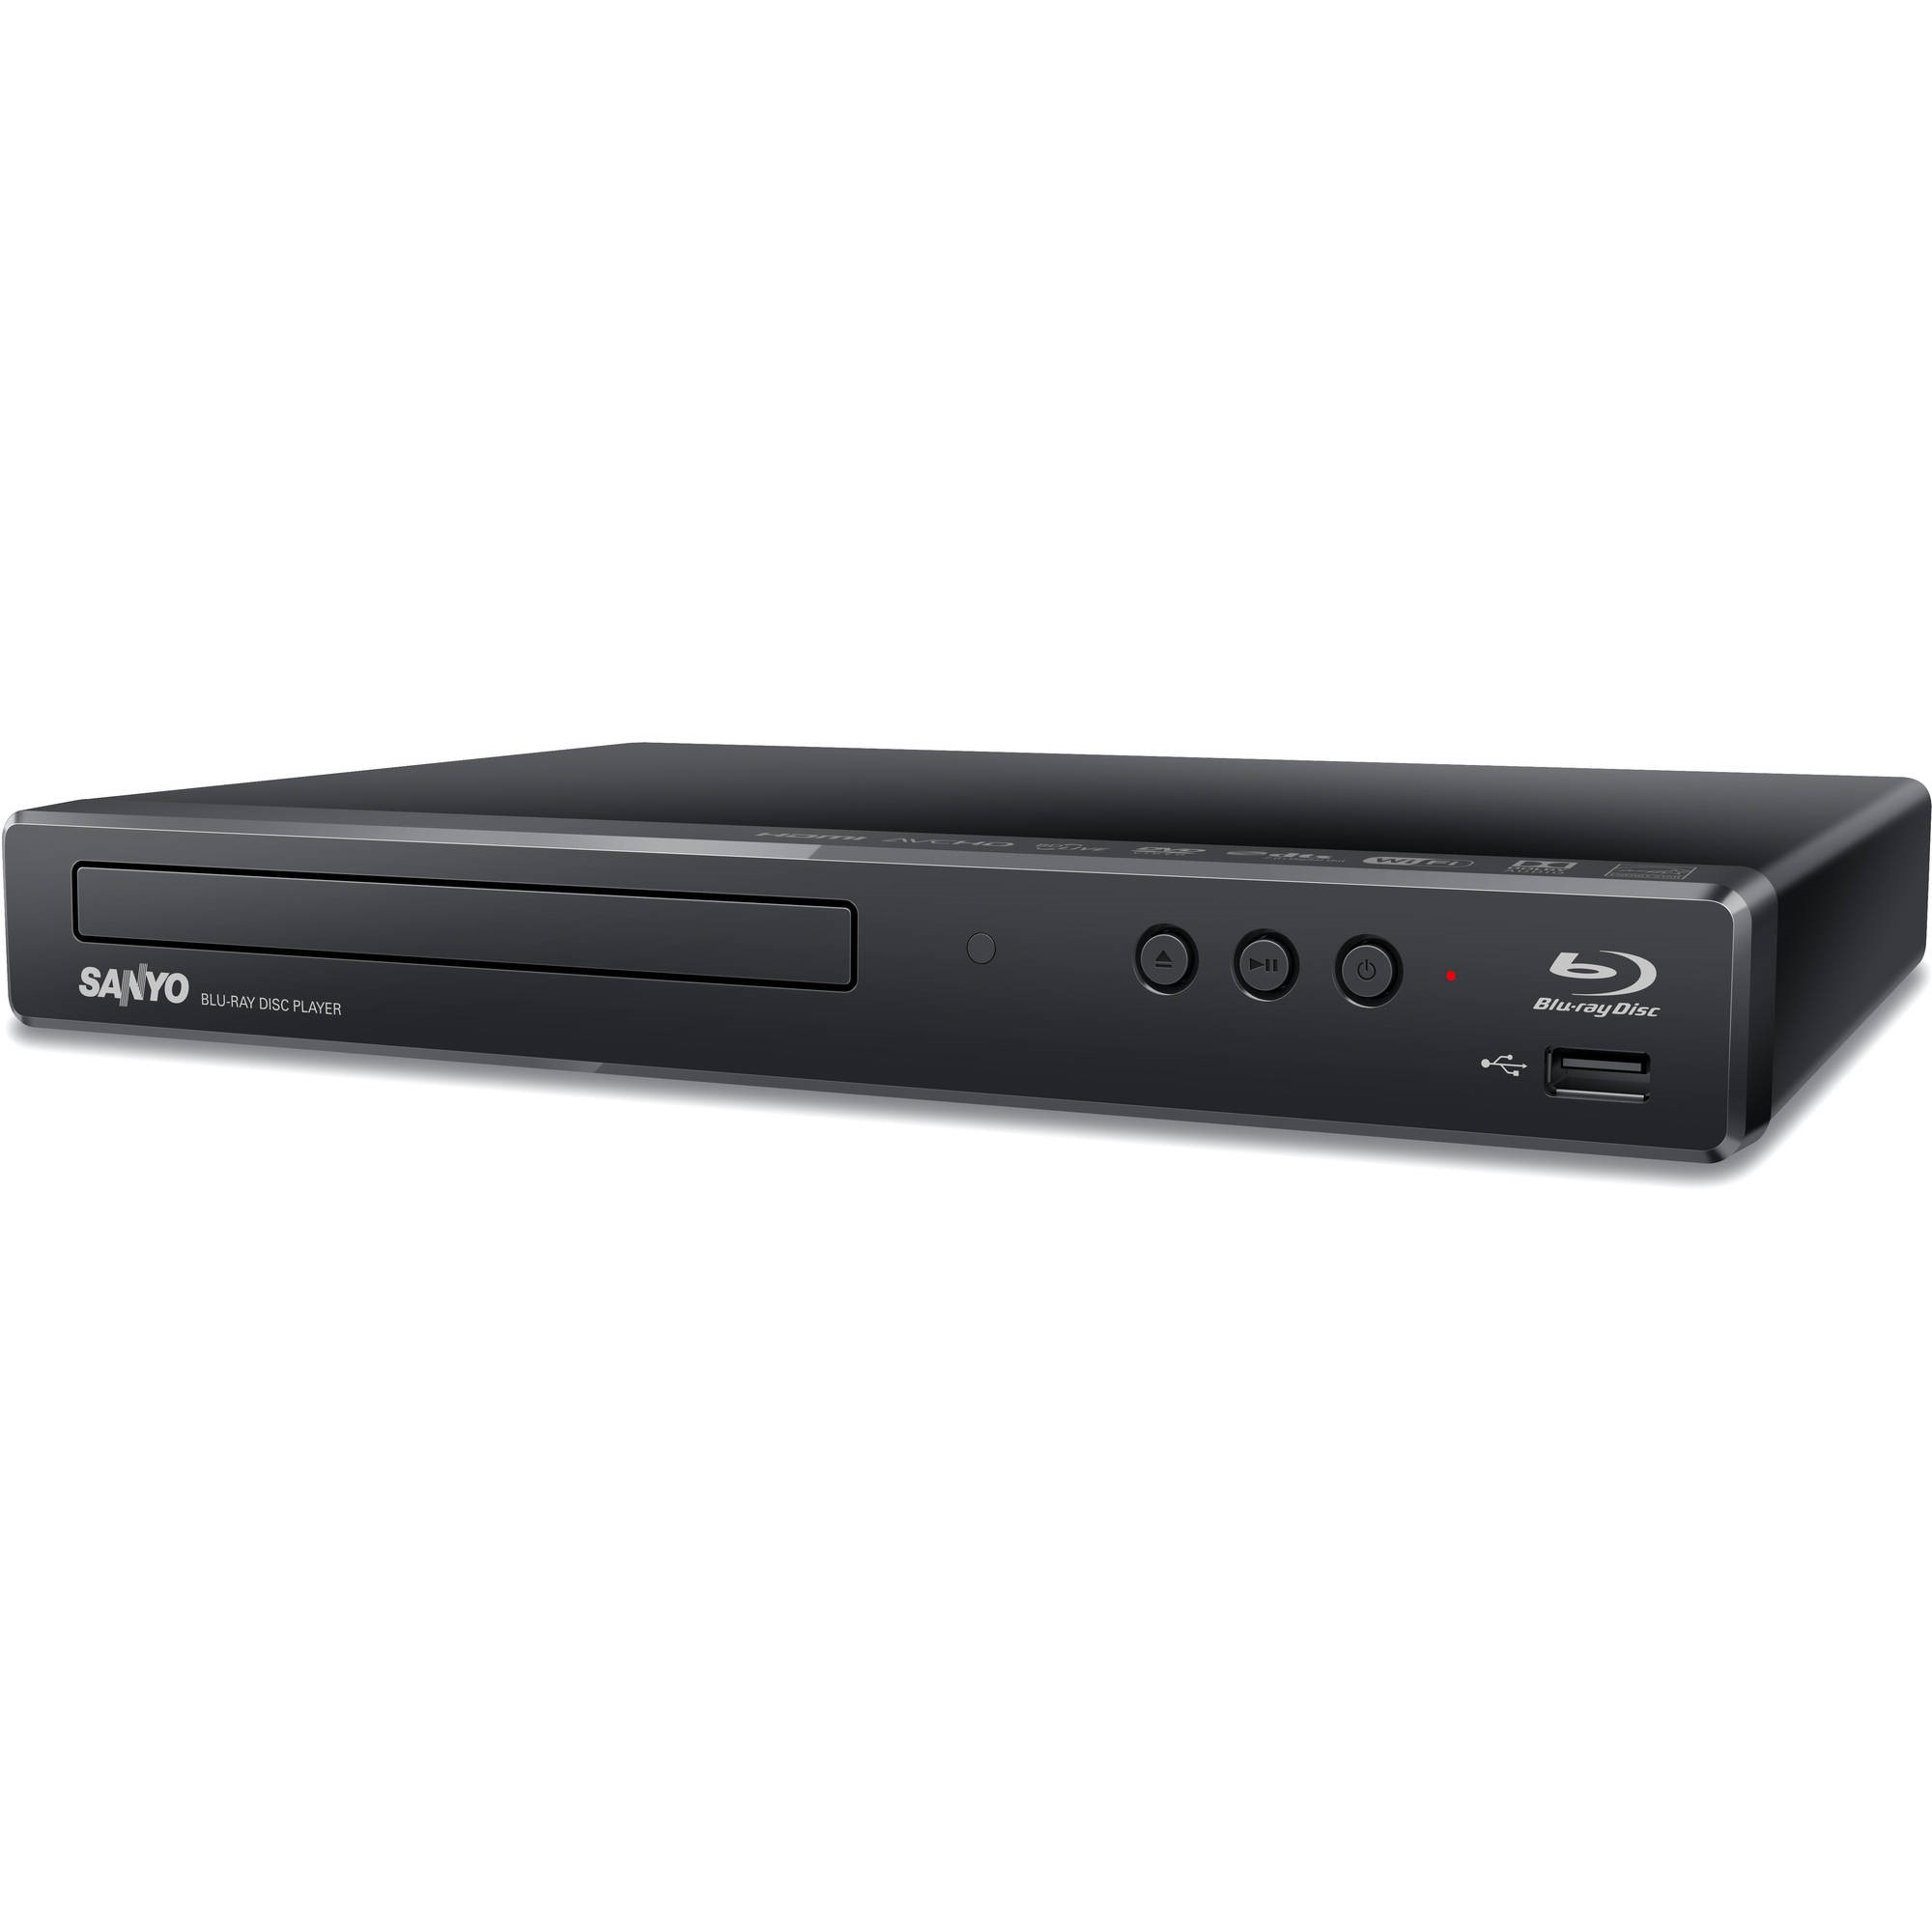 Sanyo Blu-ray Disc/DVD Player with Built-in WiFi